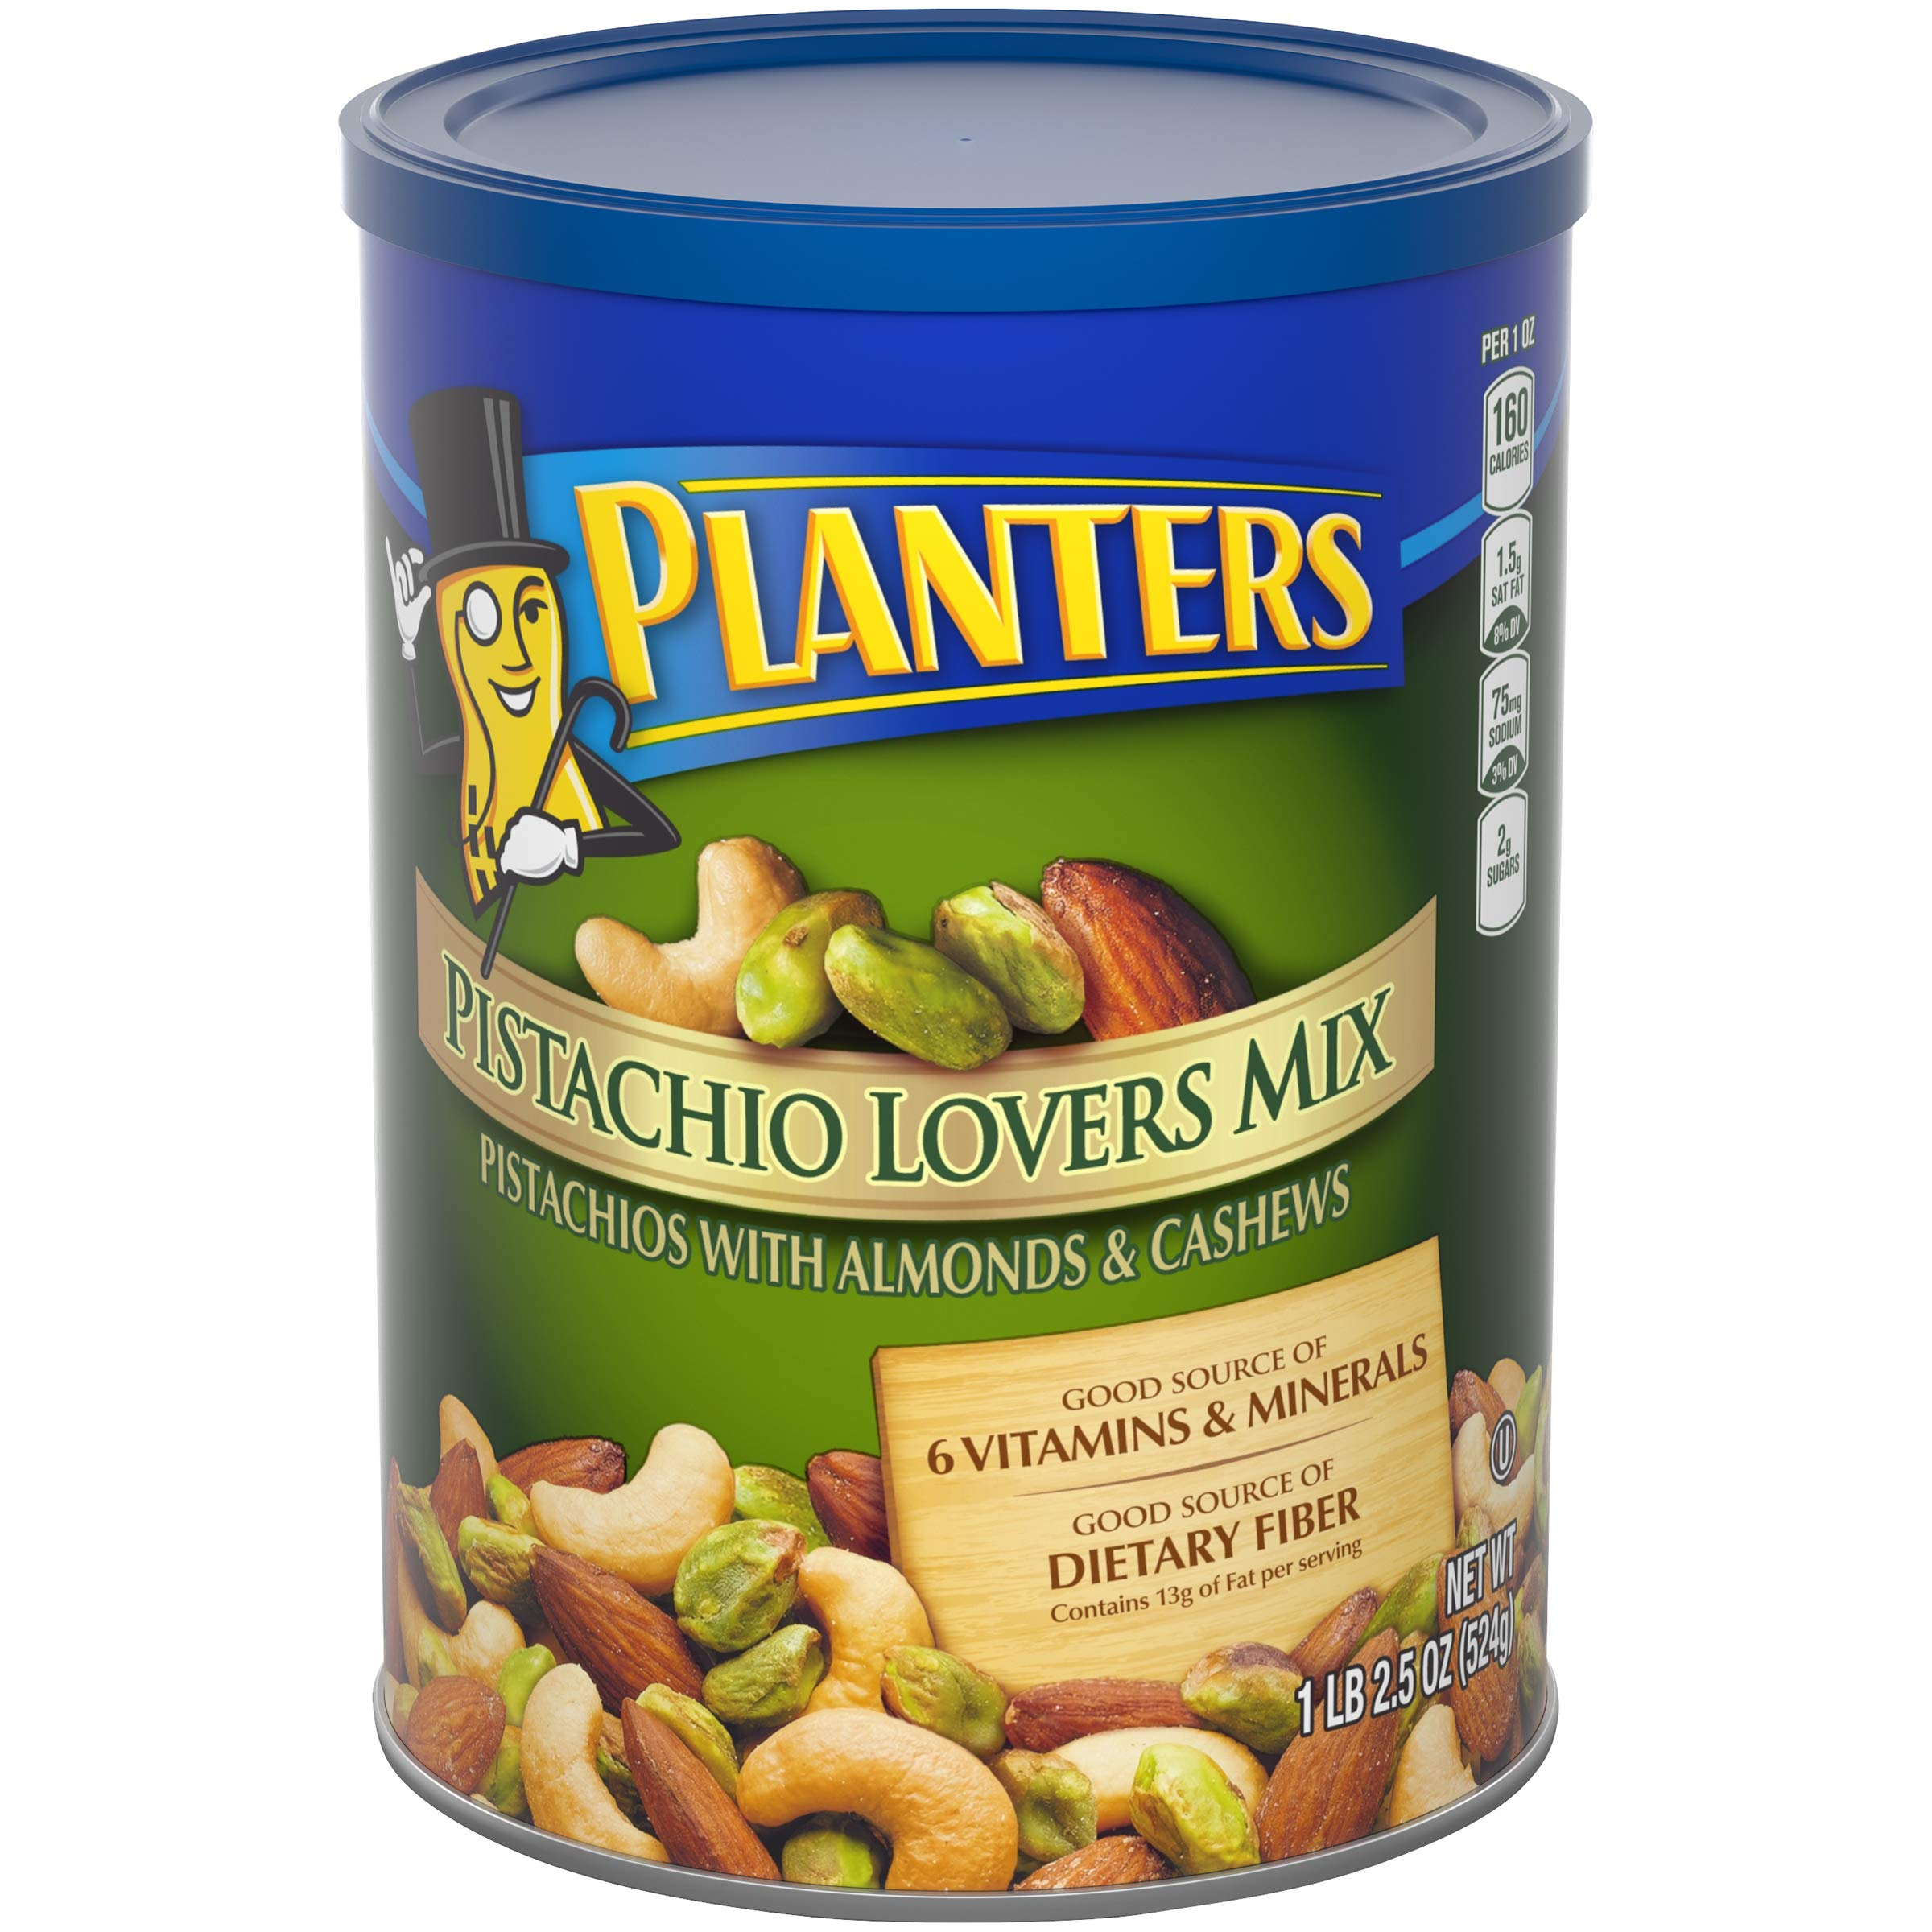 PLANTERS Pistachio Lover's Mix, 1.15 lb. Resealable Canister | Deluxe Pistachio Mix: Pistachios, Almonds & Cashews Roasted in Peanut Oil with Sea Salt | Kosher, Savory Snack by PLANTERS